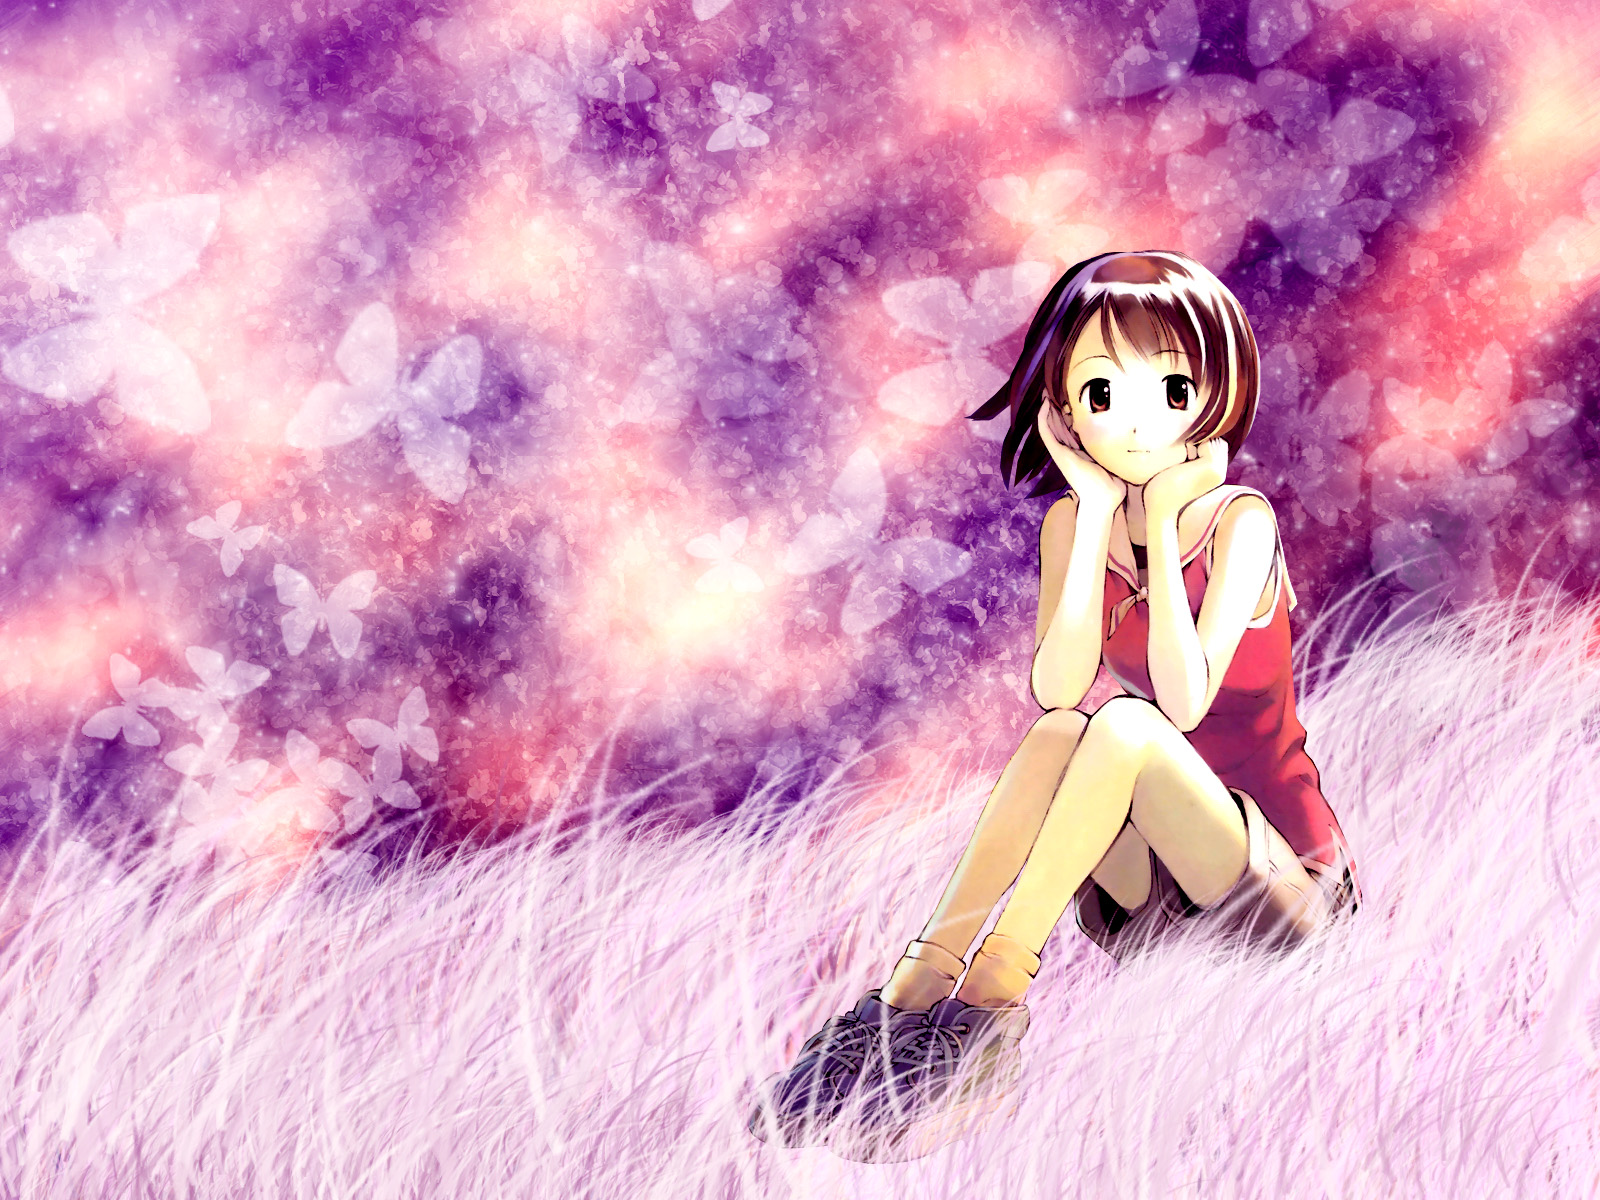 Cute anime wallpaper desktop See To World 1600x1200